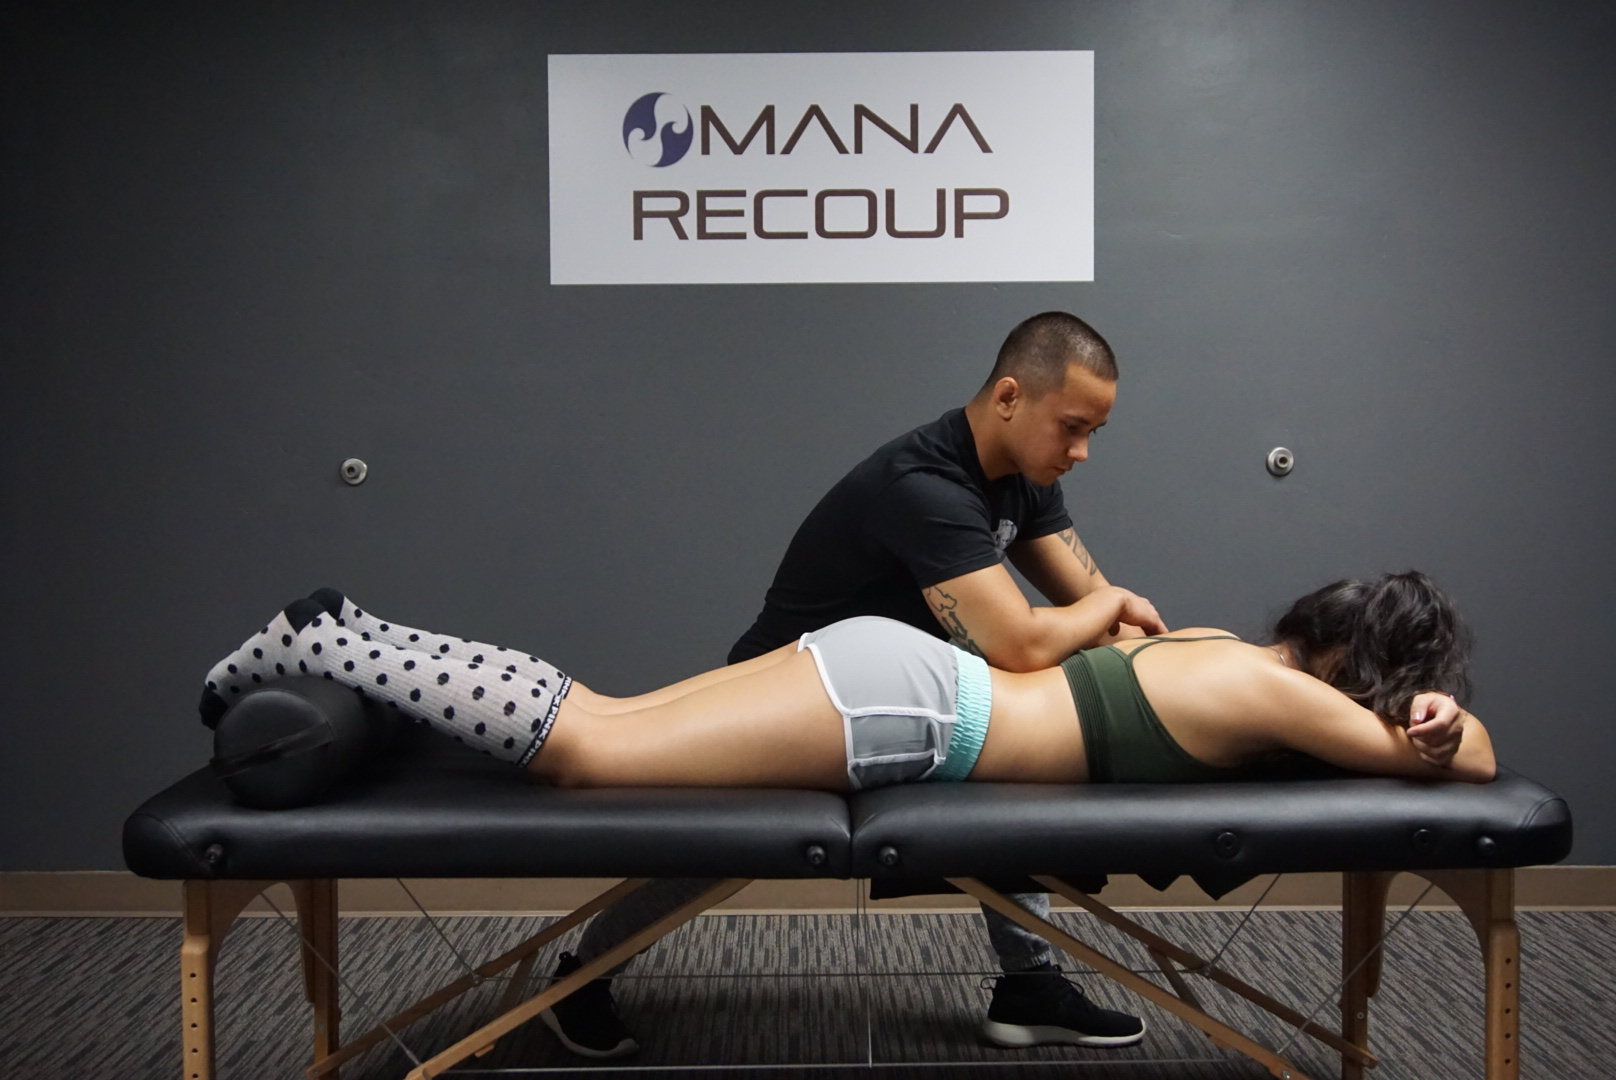 Manual Therapy/Movement Session